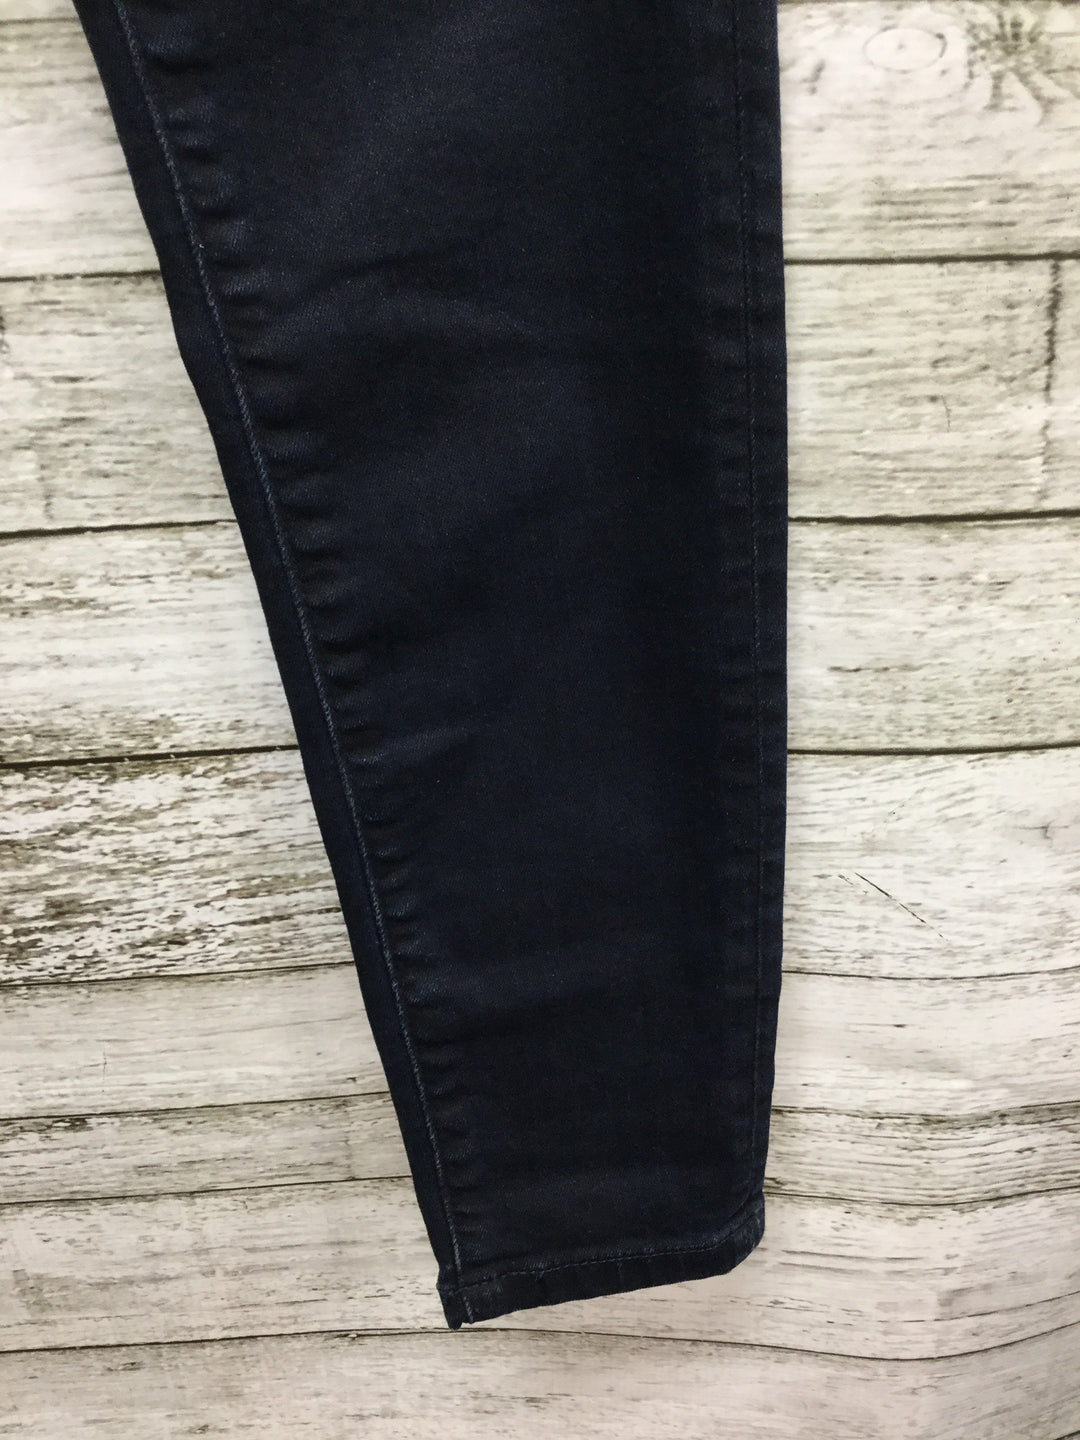 Photo #2 - BRAND: BANANA REPUBLIC , STYLE: JEANS , COLOR: DENIM , SIZE: 0 , OTHER INFO: NEW! , SKU: 127-4954-4755, , NEW WITH TAGS, HIGH RISE, SKINNY, ANKLE JEANS.